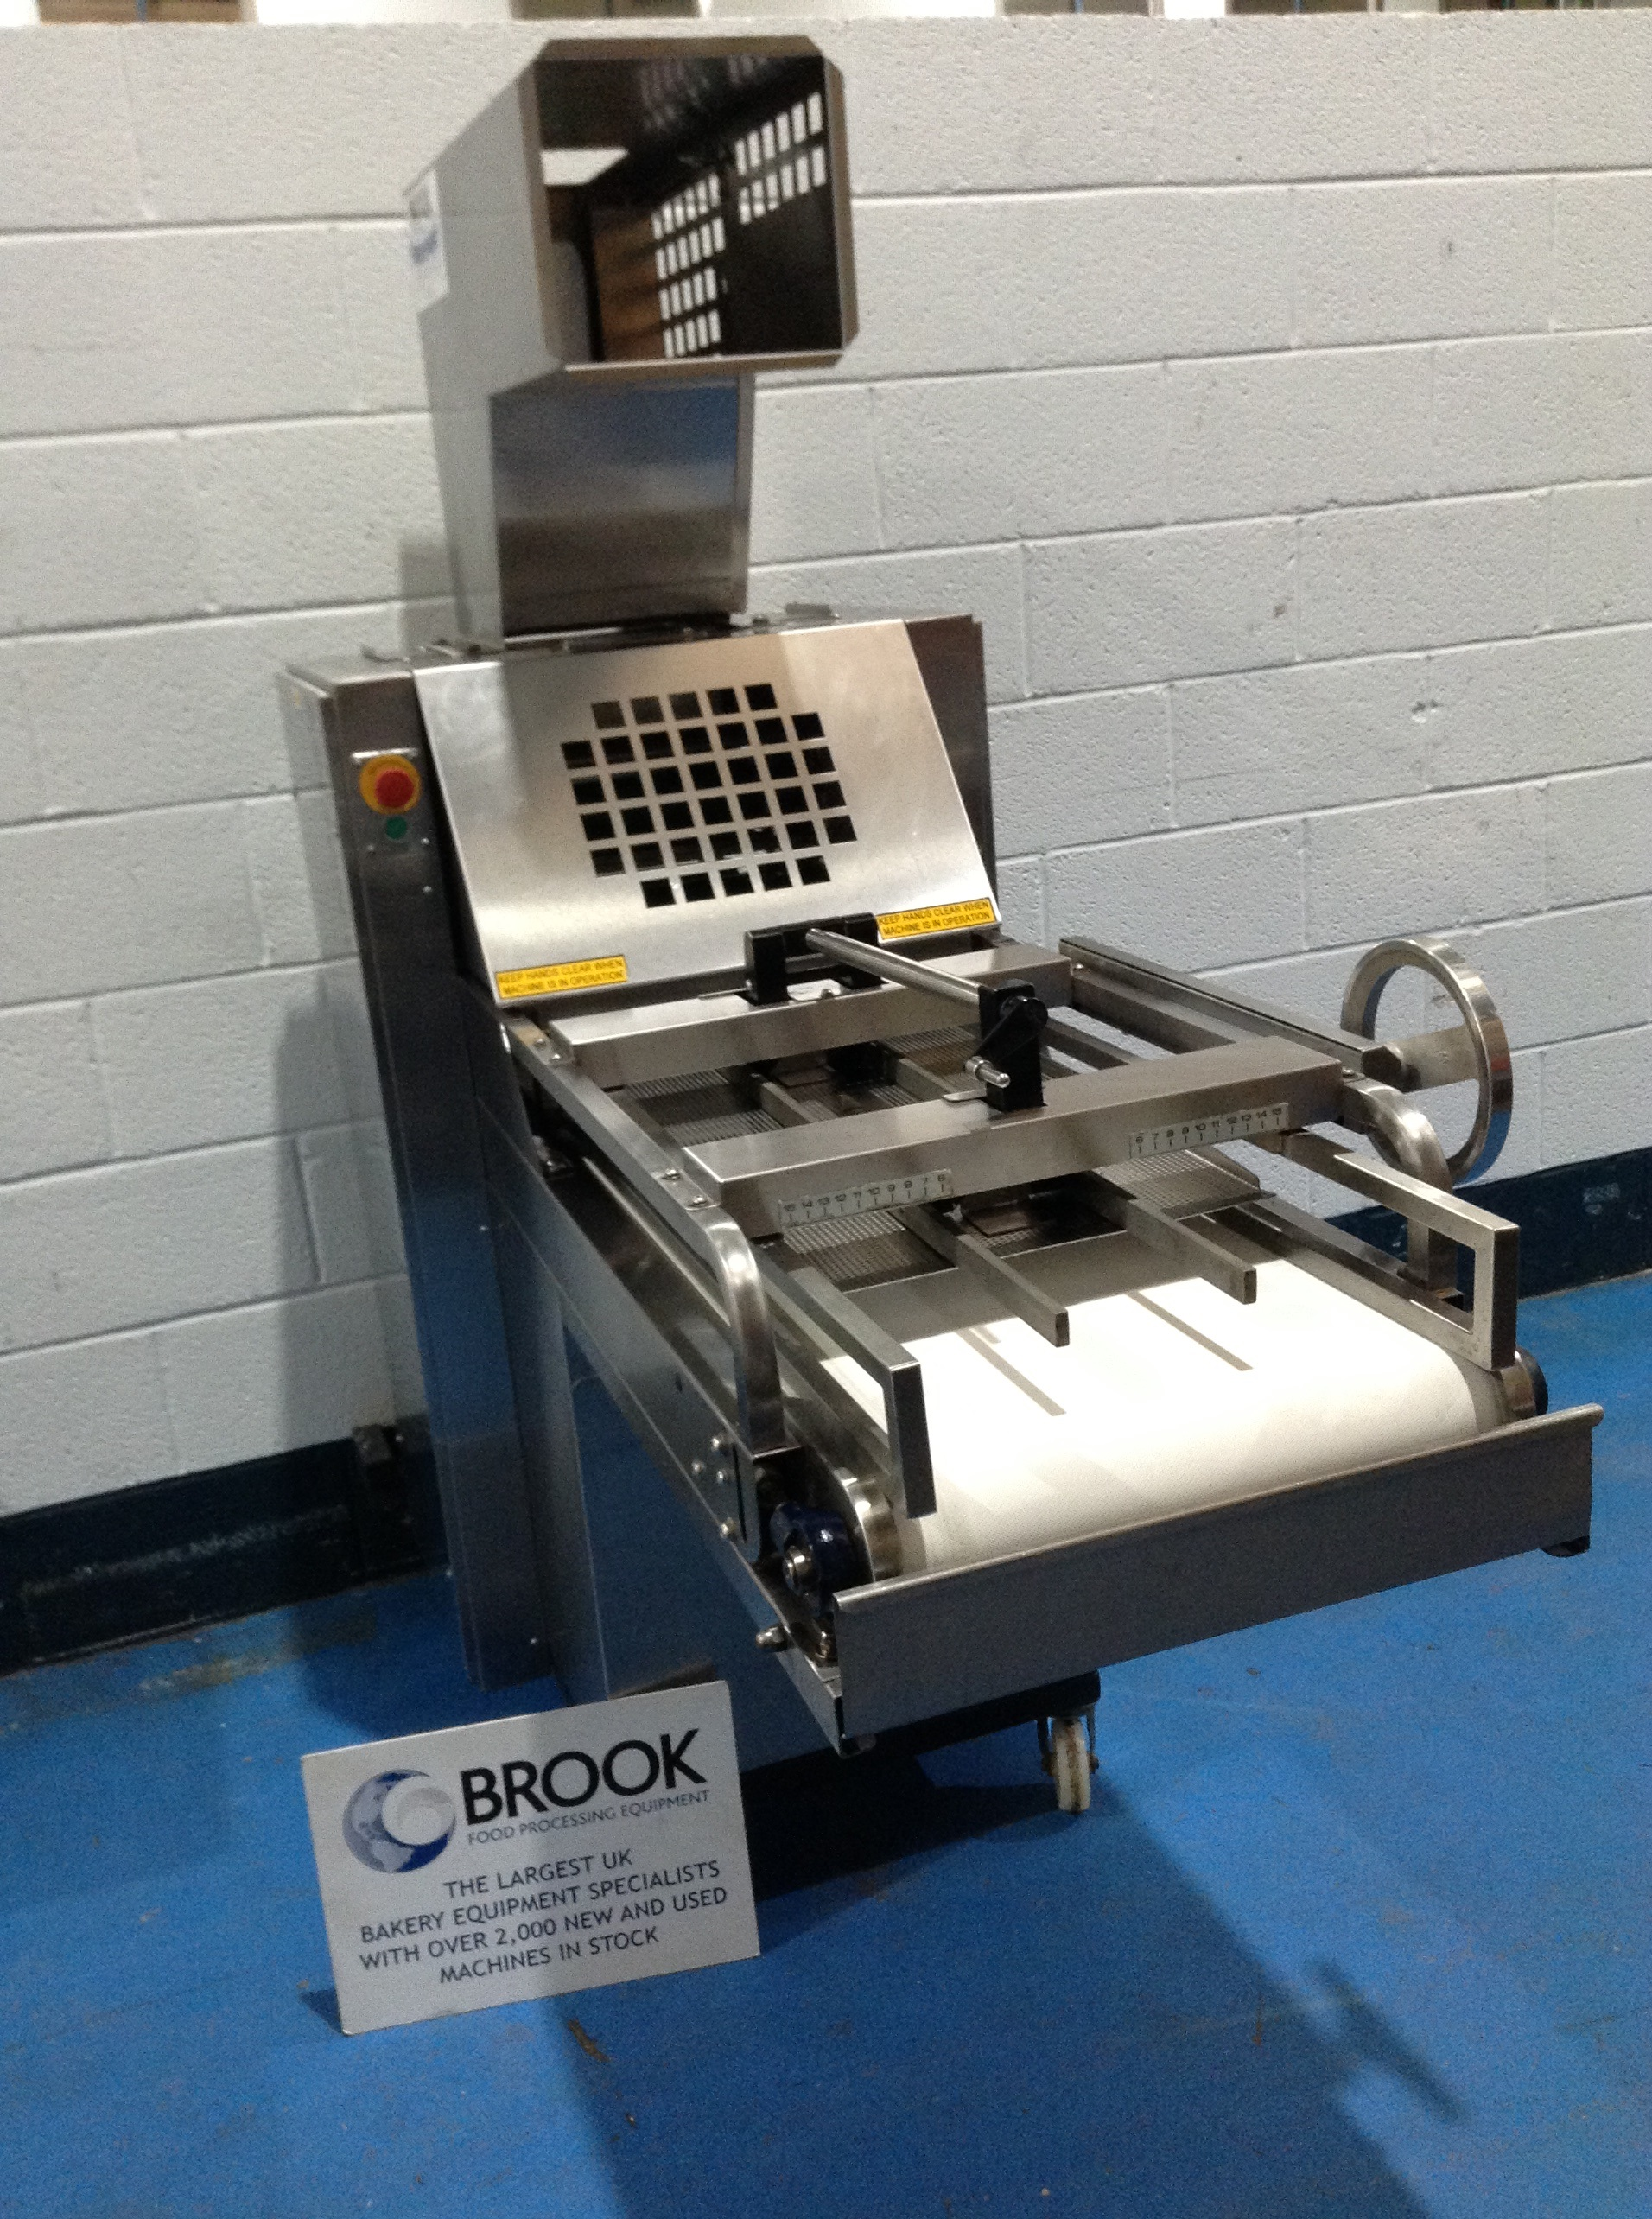 MONO METRO MOULDER, ALL STAINLESS, NEW BELT, INTERLOCK GUARD FOR HAND OR PLANT FEED, REFURBISHED